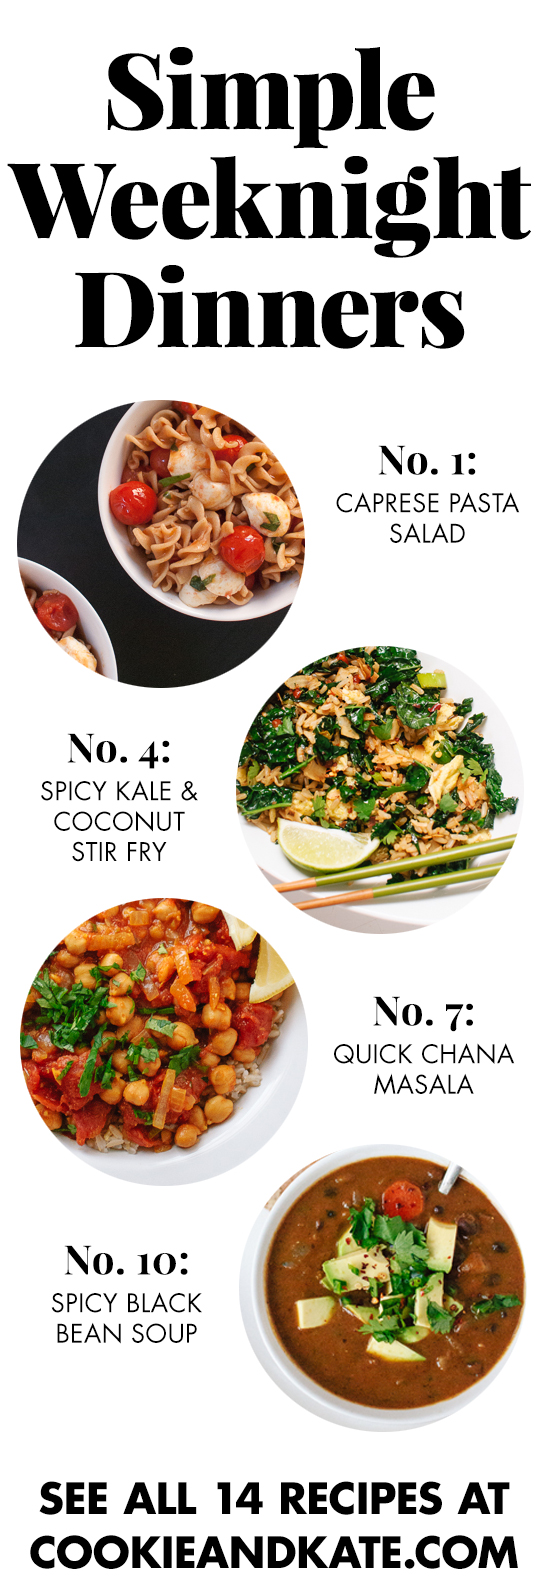 14 easy and healthy dinner recipes for busy weeknights! Find them at cookieandkate.com